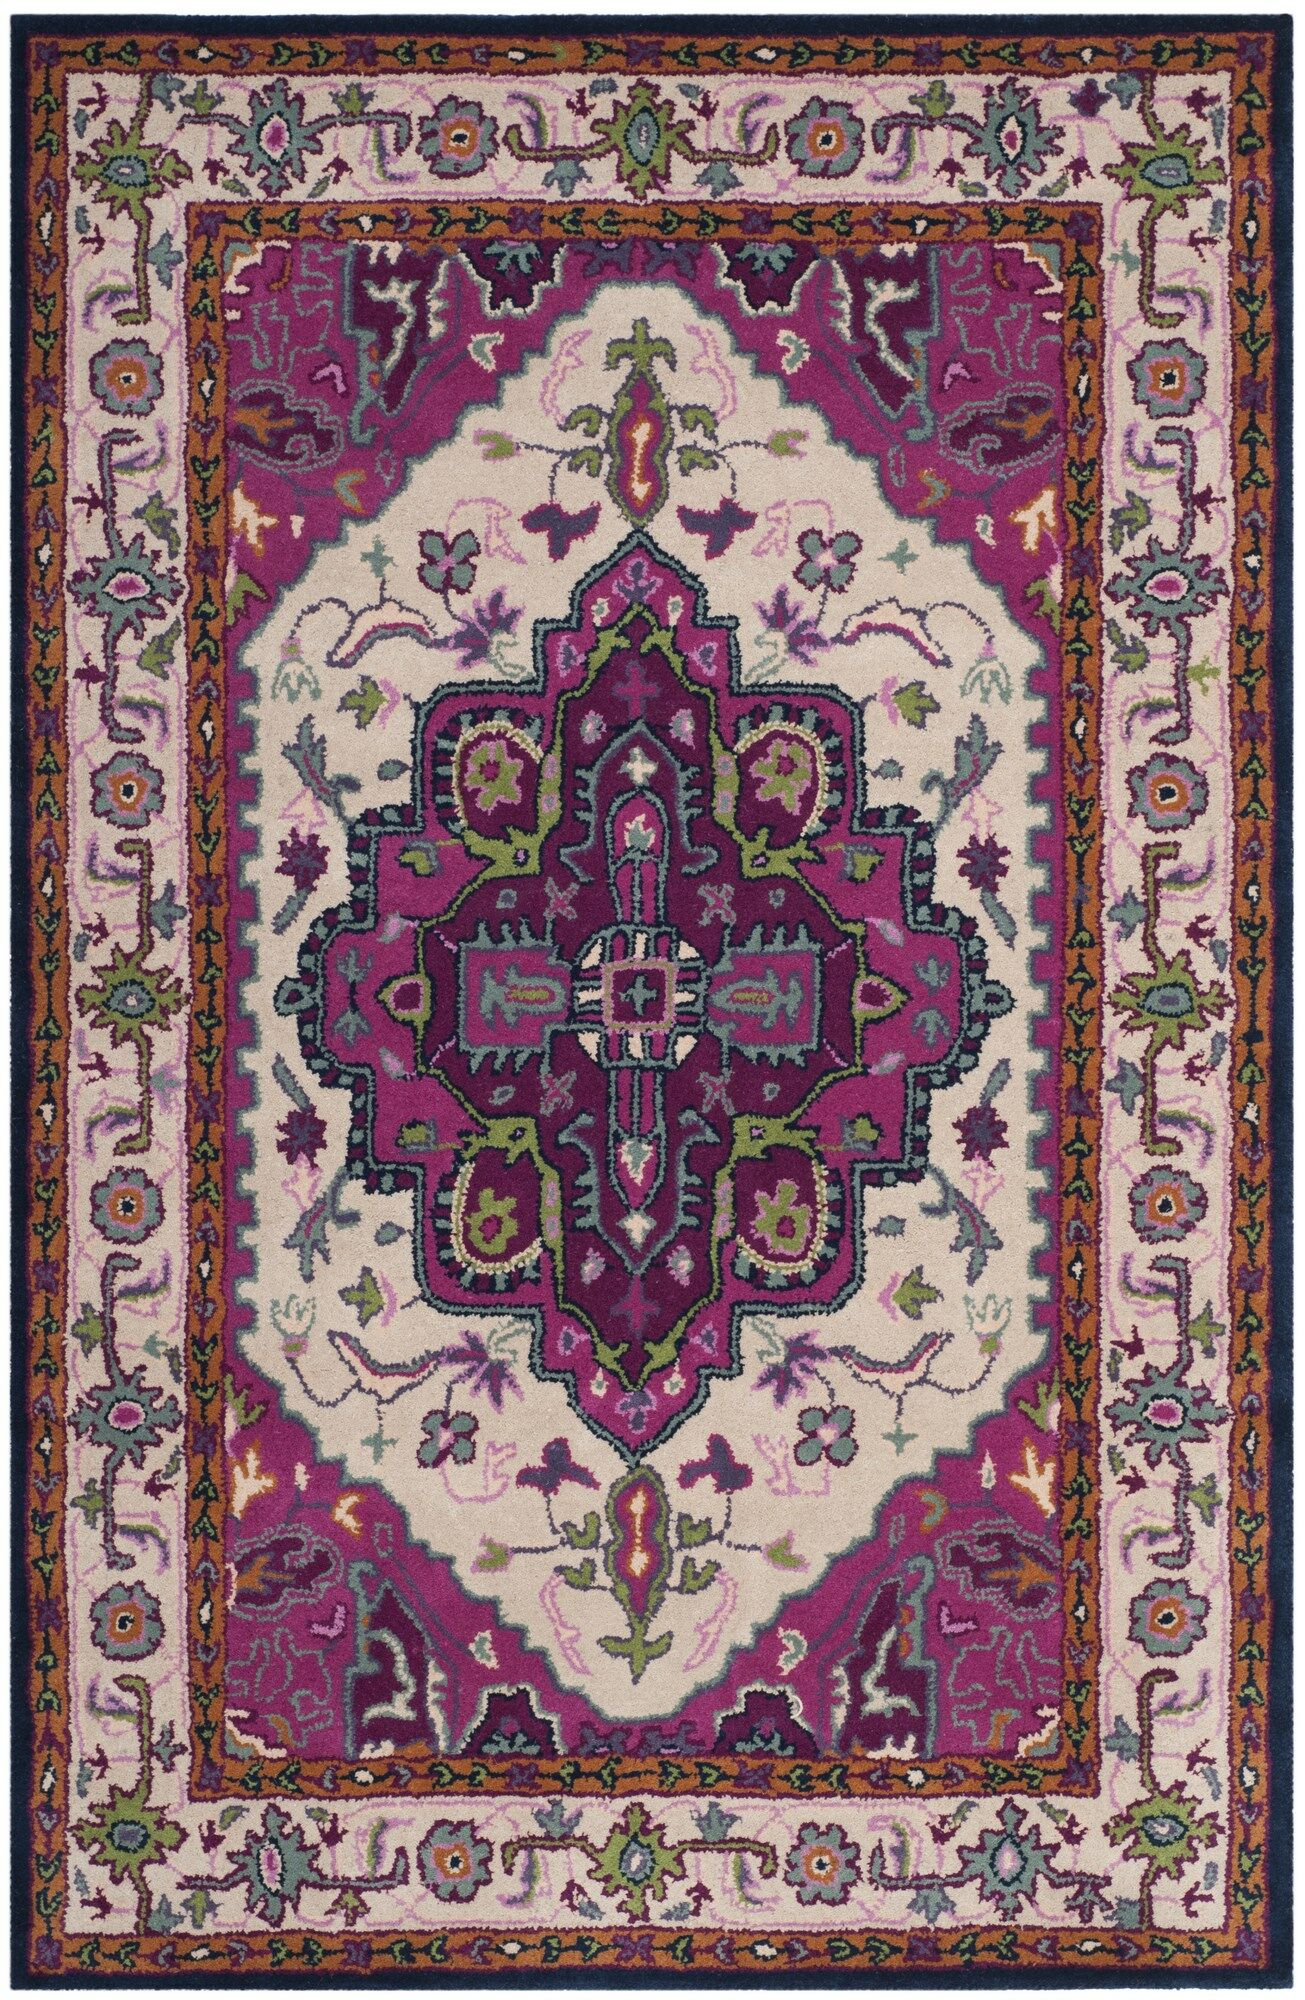 Blokzijl Hand-Tufted Wool Purple Area Rug Rug Size: Rectangle 3' x 5'